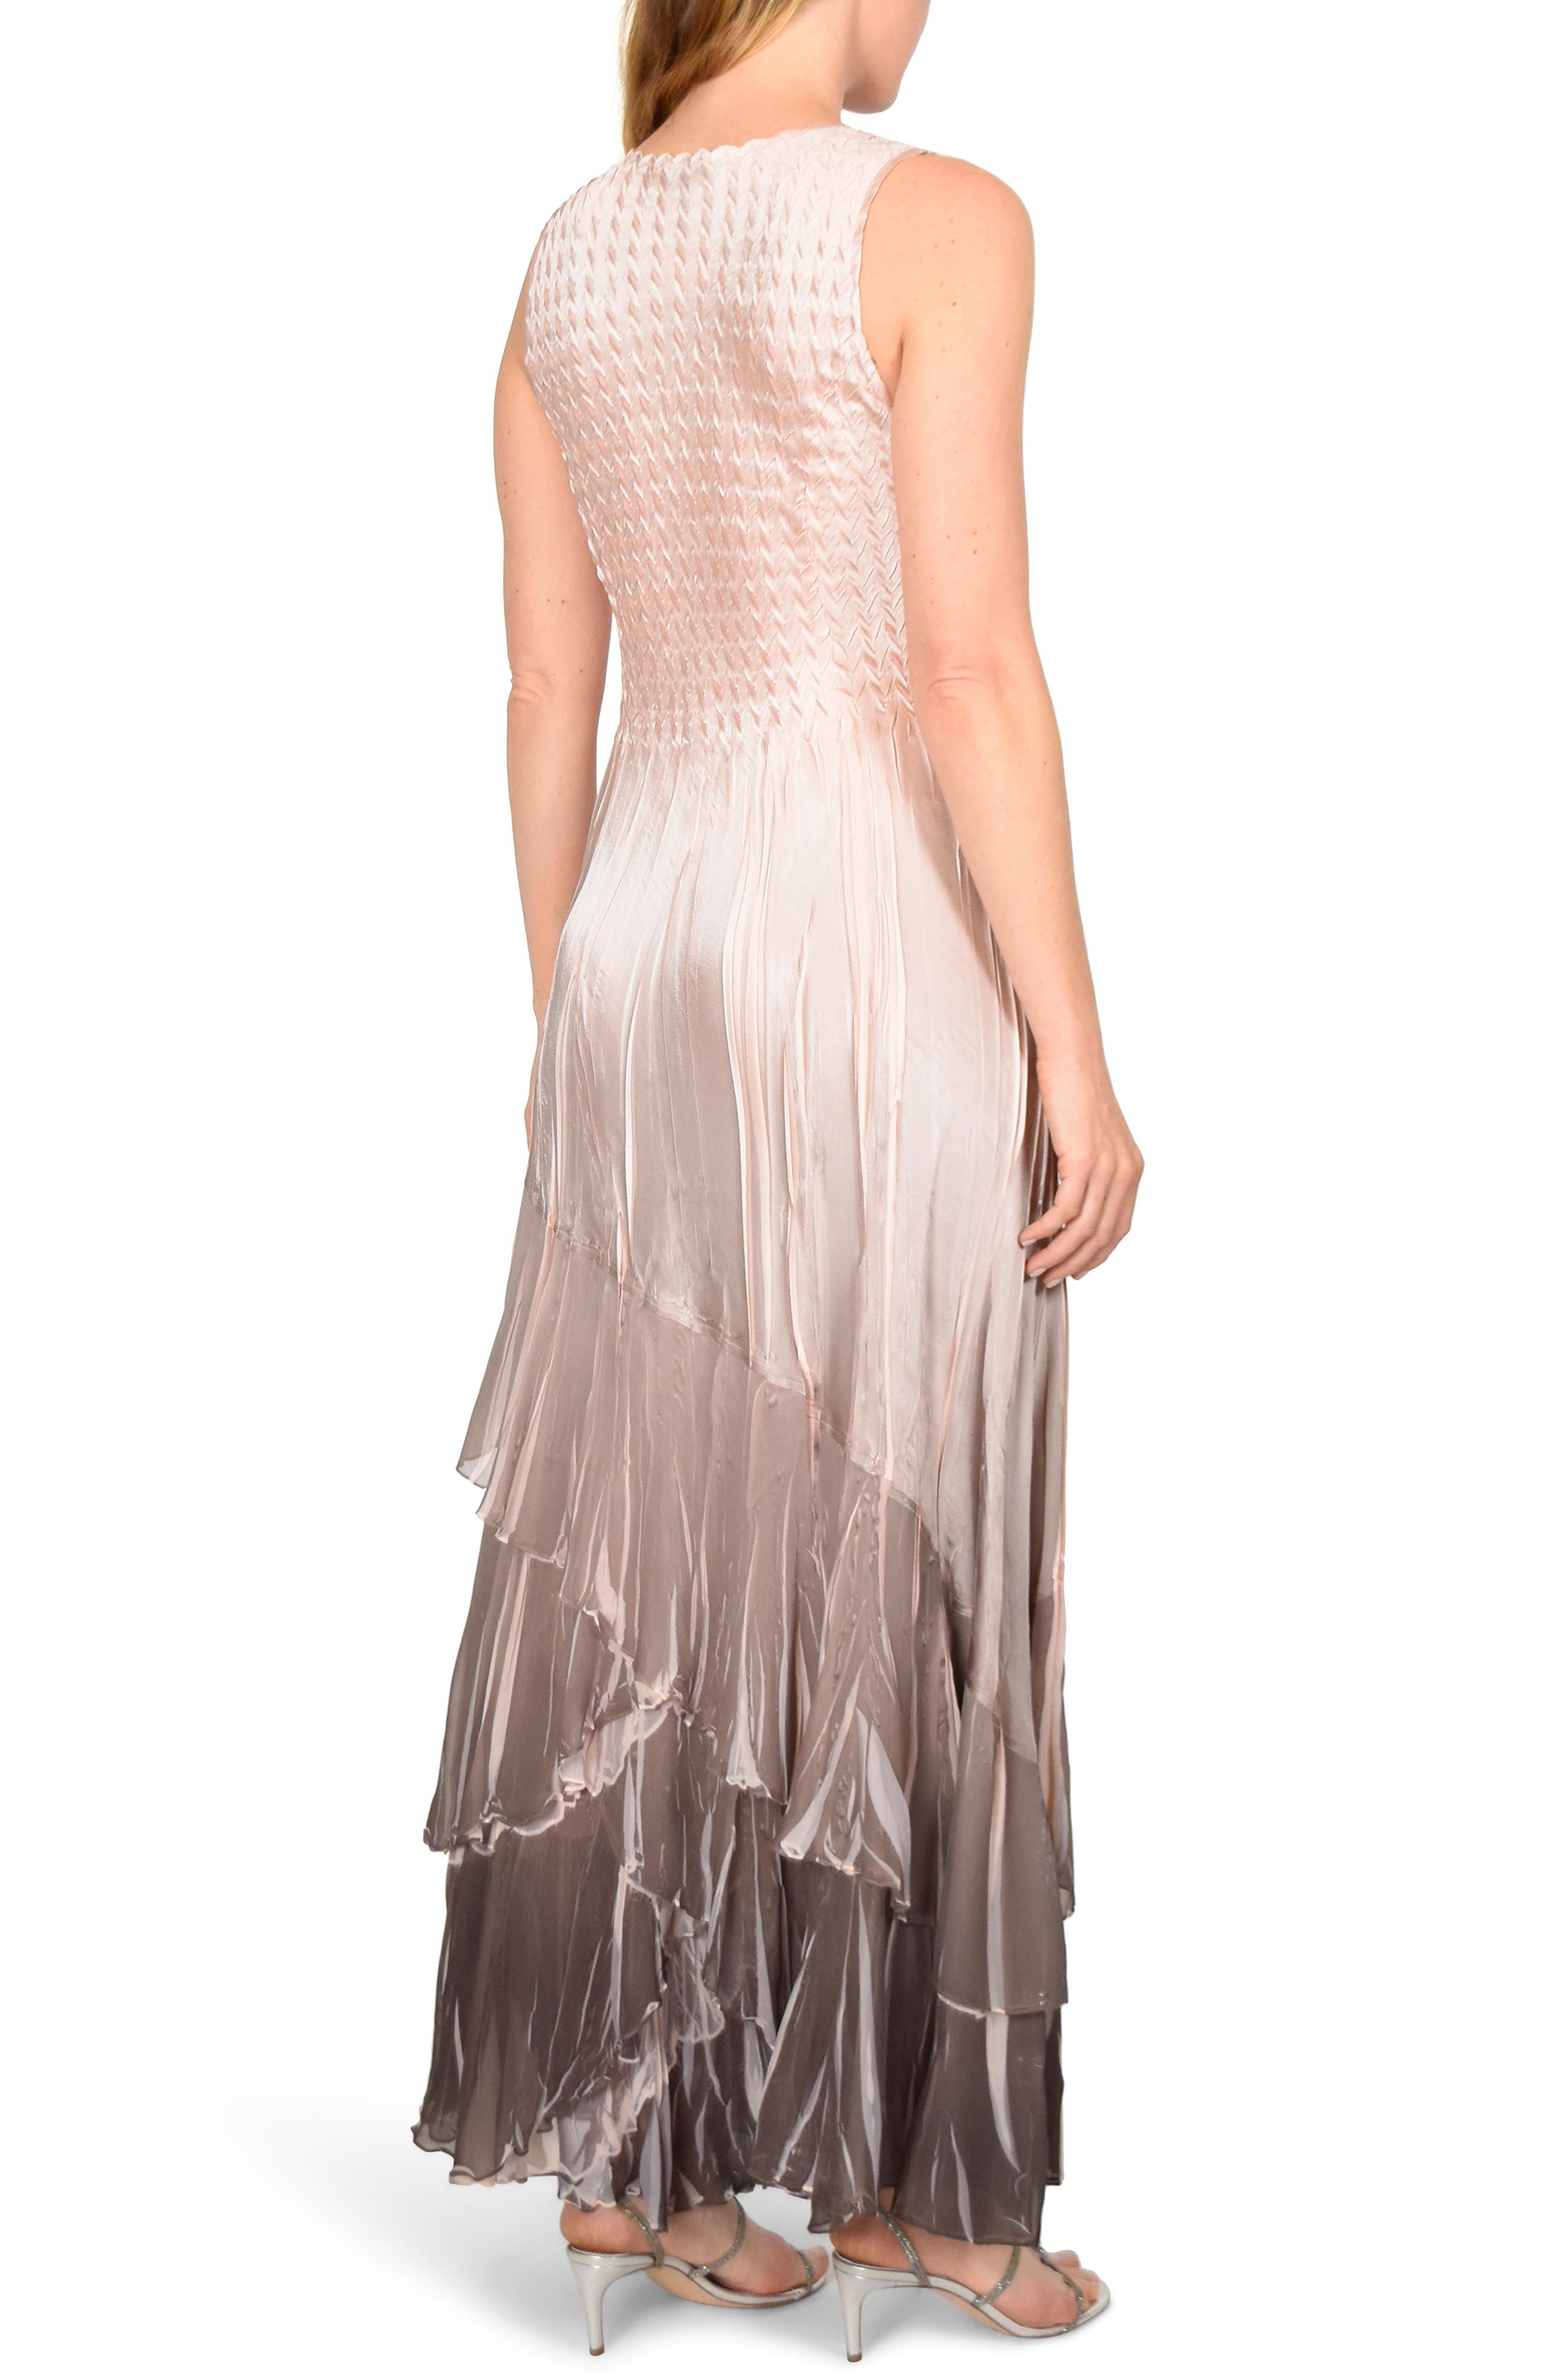 KOMAROV, Layered Maxi Dress with Wrap, Alternate thumbnail 2, color, VINTAGE ROSE CAFE OMBRE